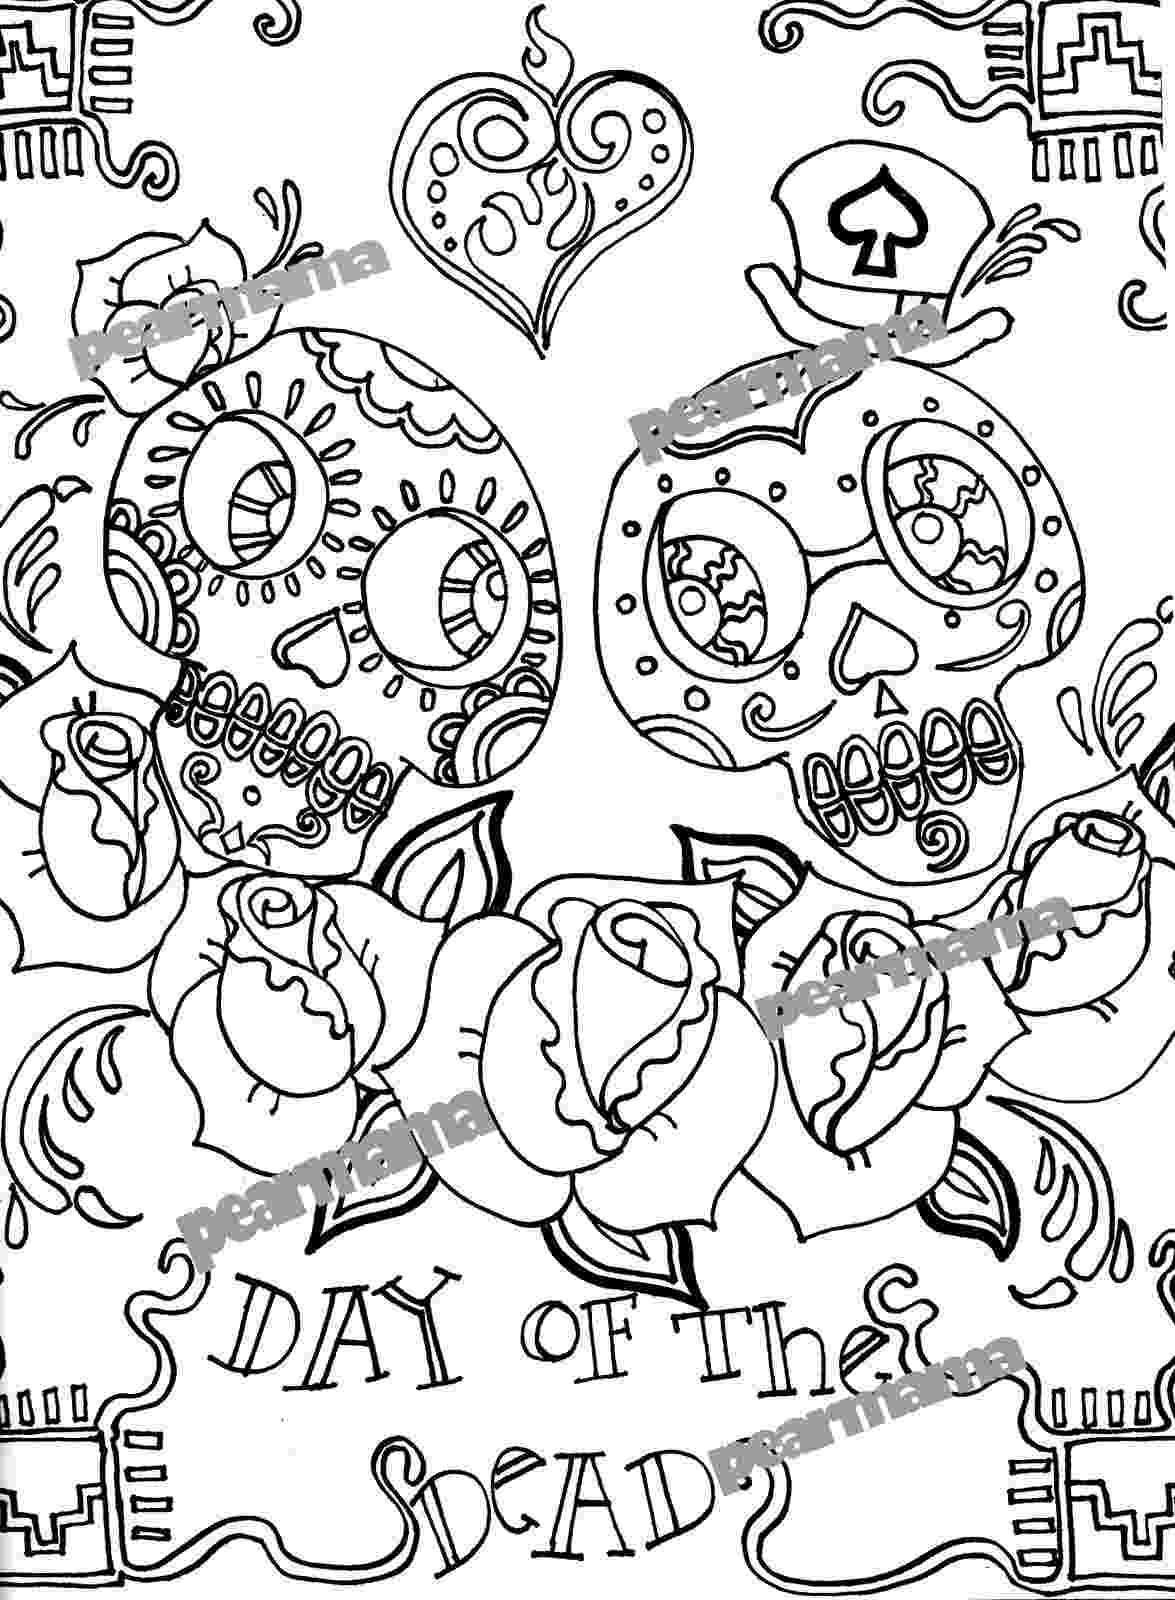 day of dead coloring pages free printable day of the dead coloring pages best coloring pages day of dead